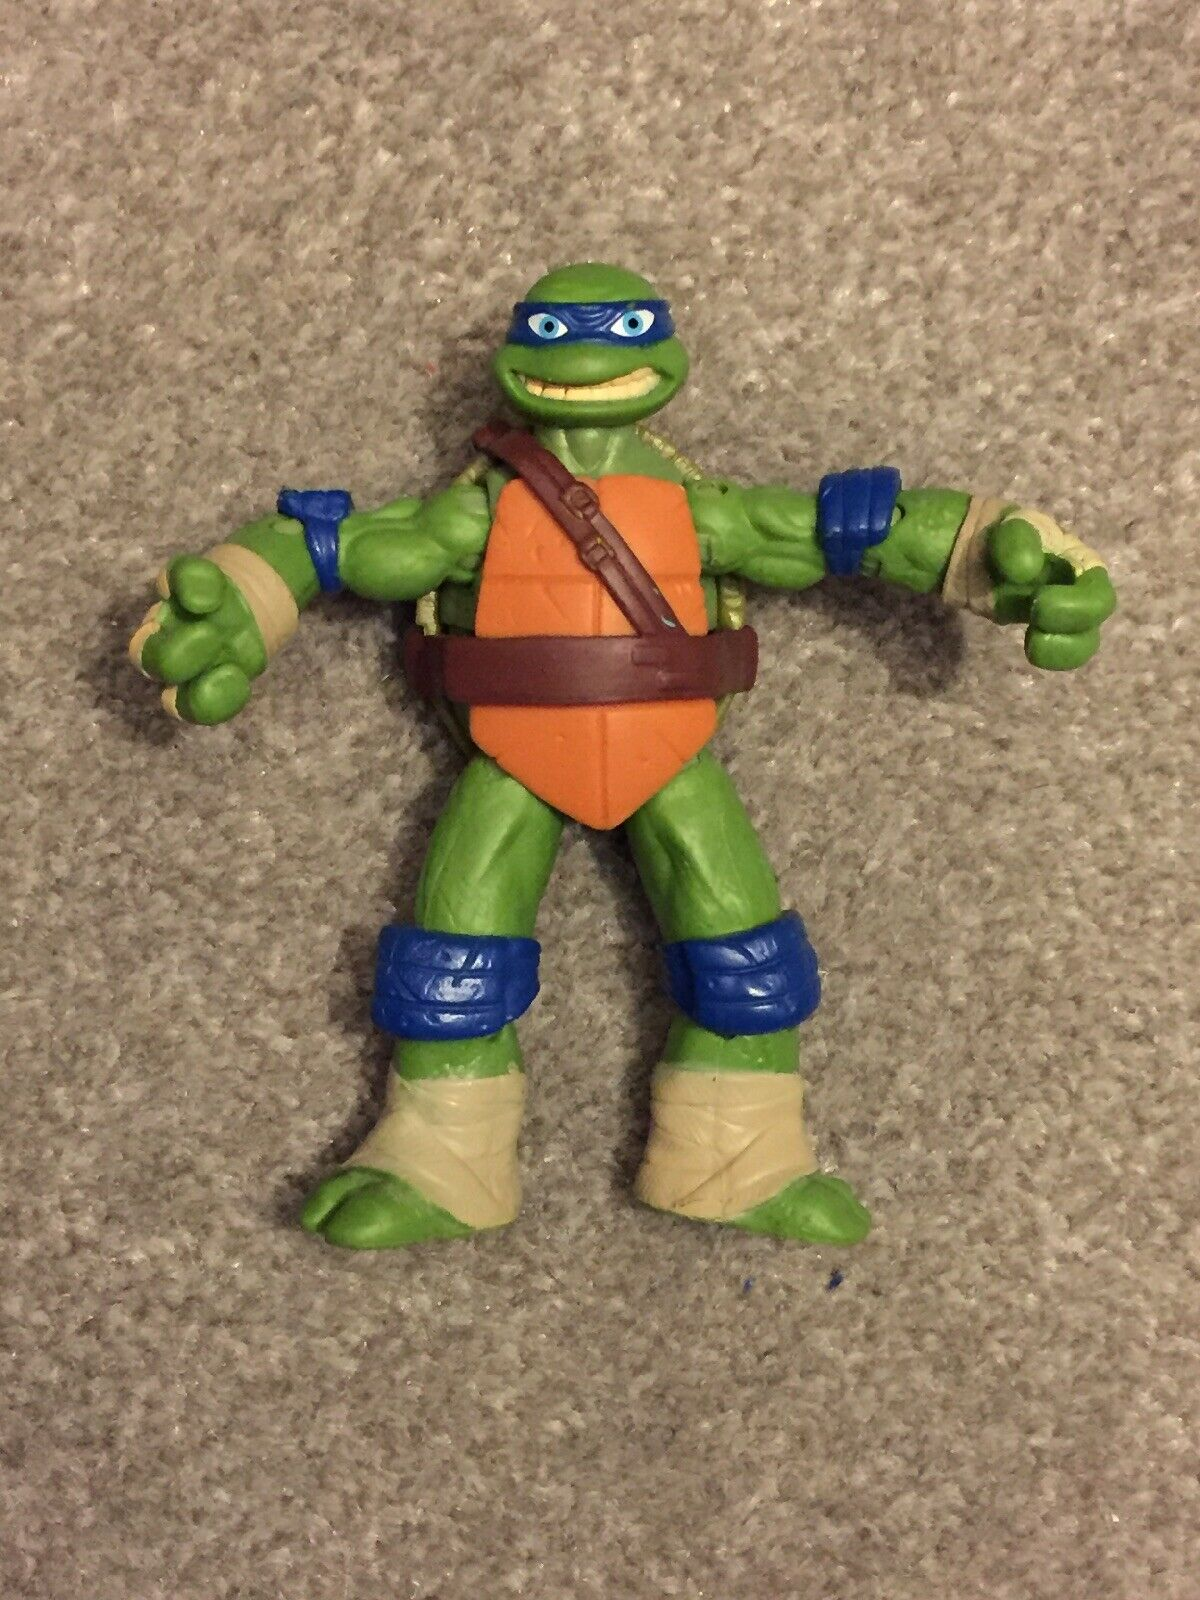 Very Rare Leonardo Turtle Figure 2012 With With With Manufacture Fault Blau Elbow Knee Pad 80df79